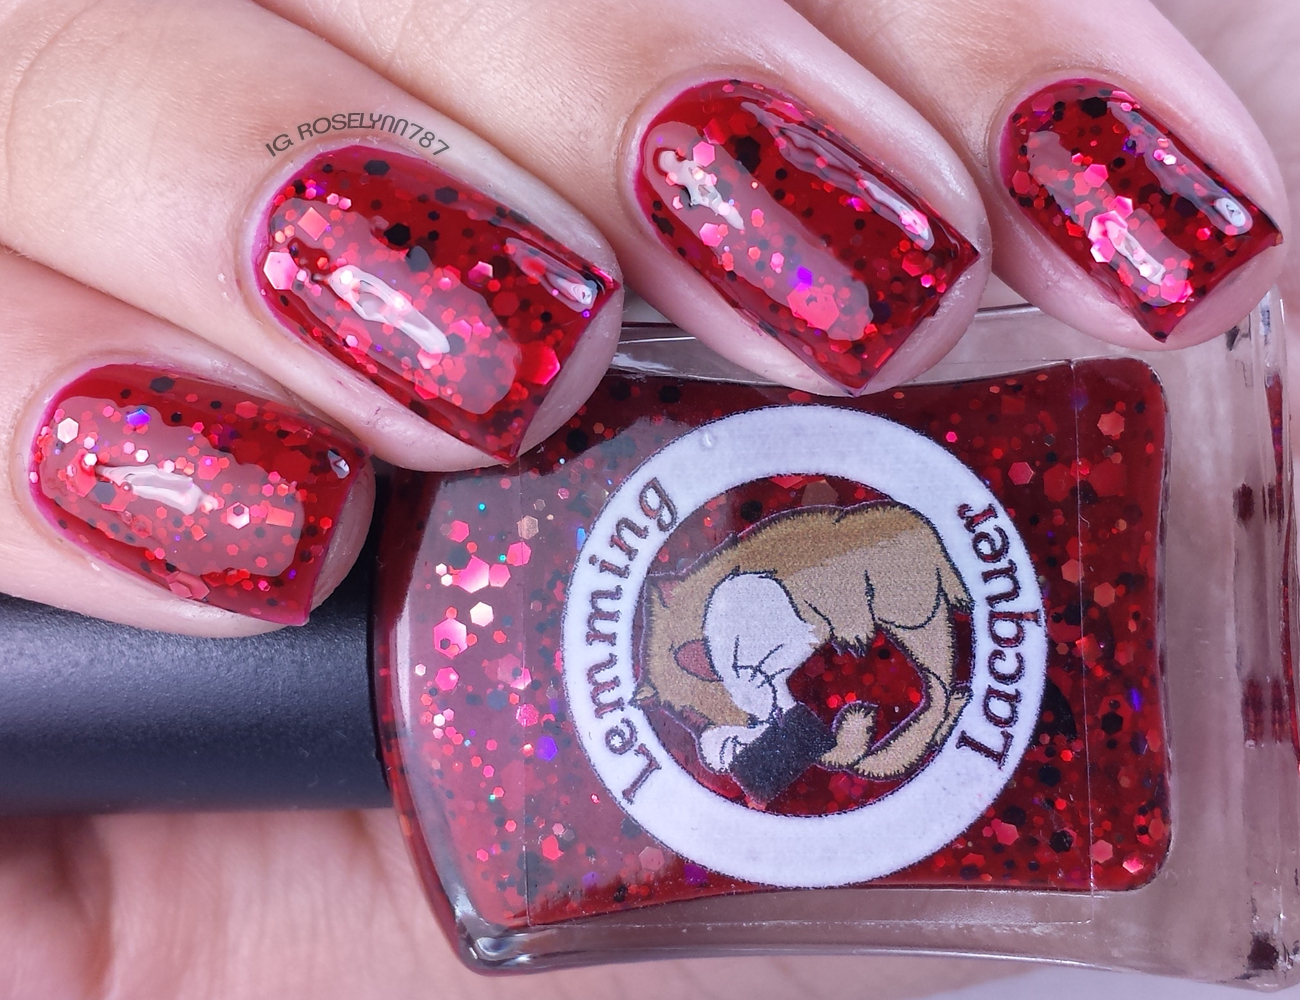 Lemming Lacquer - Her Imperial Viciousness